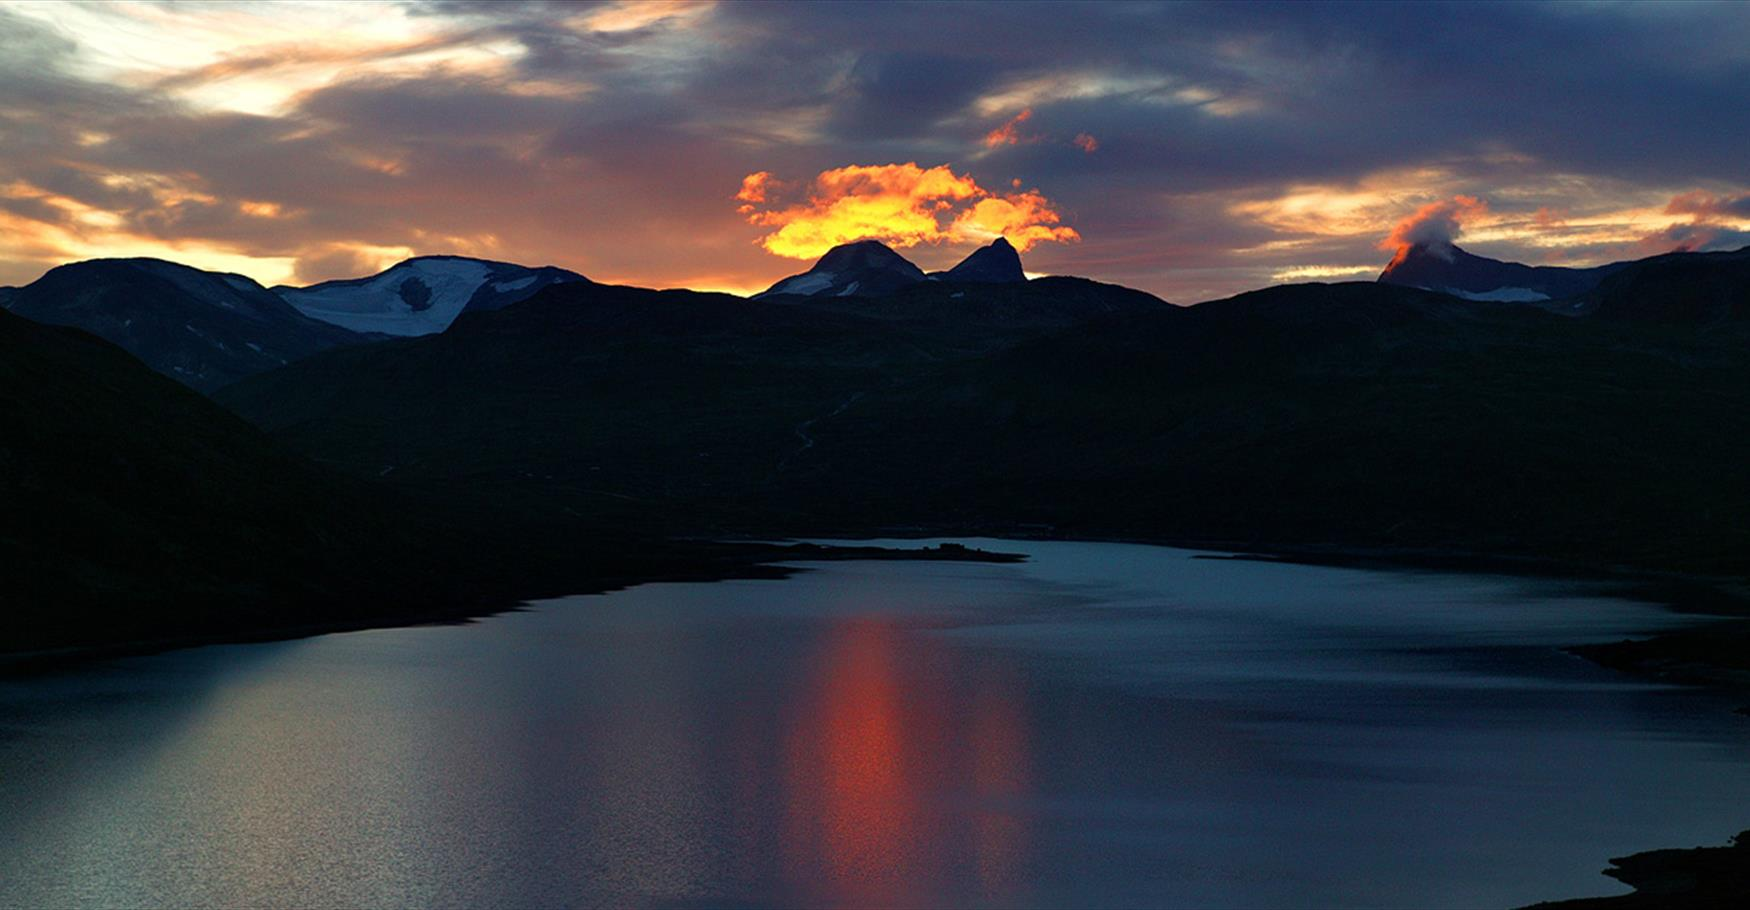 Evening in Jotunheimen.